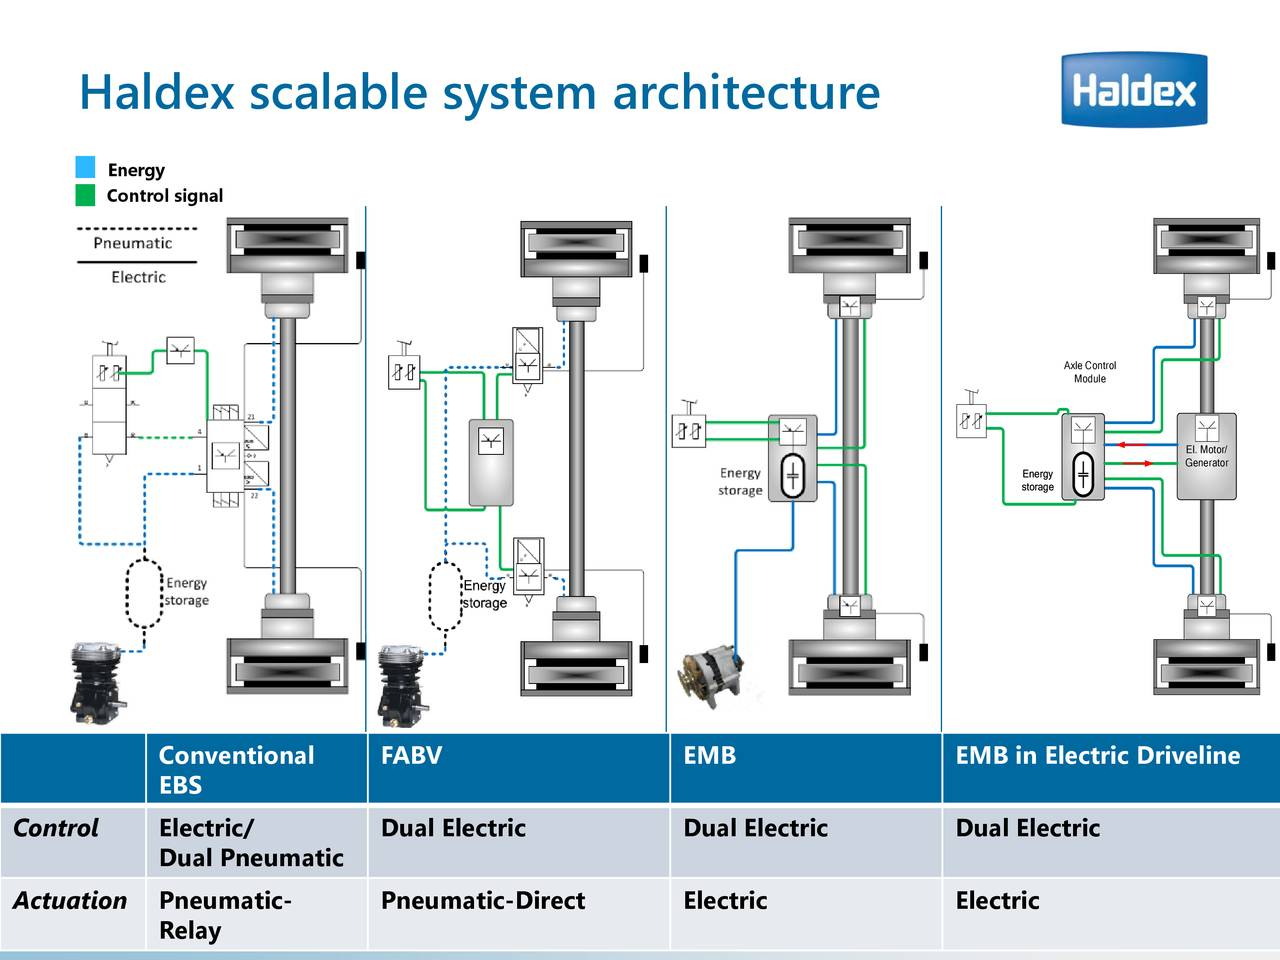 Haldex Hldxf Investor Presentation Slideshow Ab Emb Current Relay Otcmktshldxf Seeking Alpha